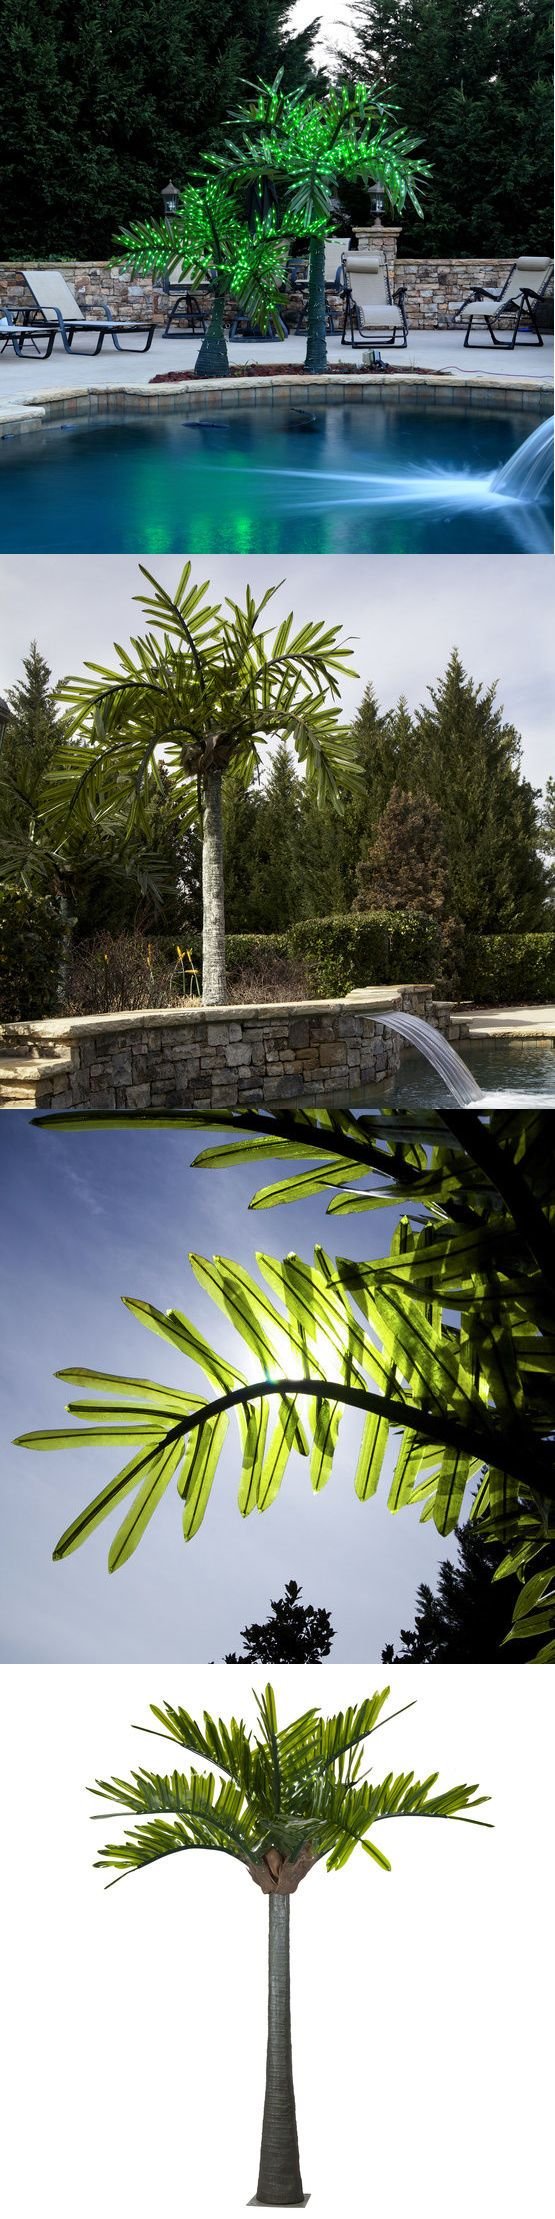 Other Outdoor Lighting 20509: 10Ft Outdoor Pool Realistic Commercial Green Led Lighted Tropical Palm Tree -> BUY IT NOW ONLY: $1499 on eBay!